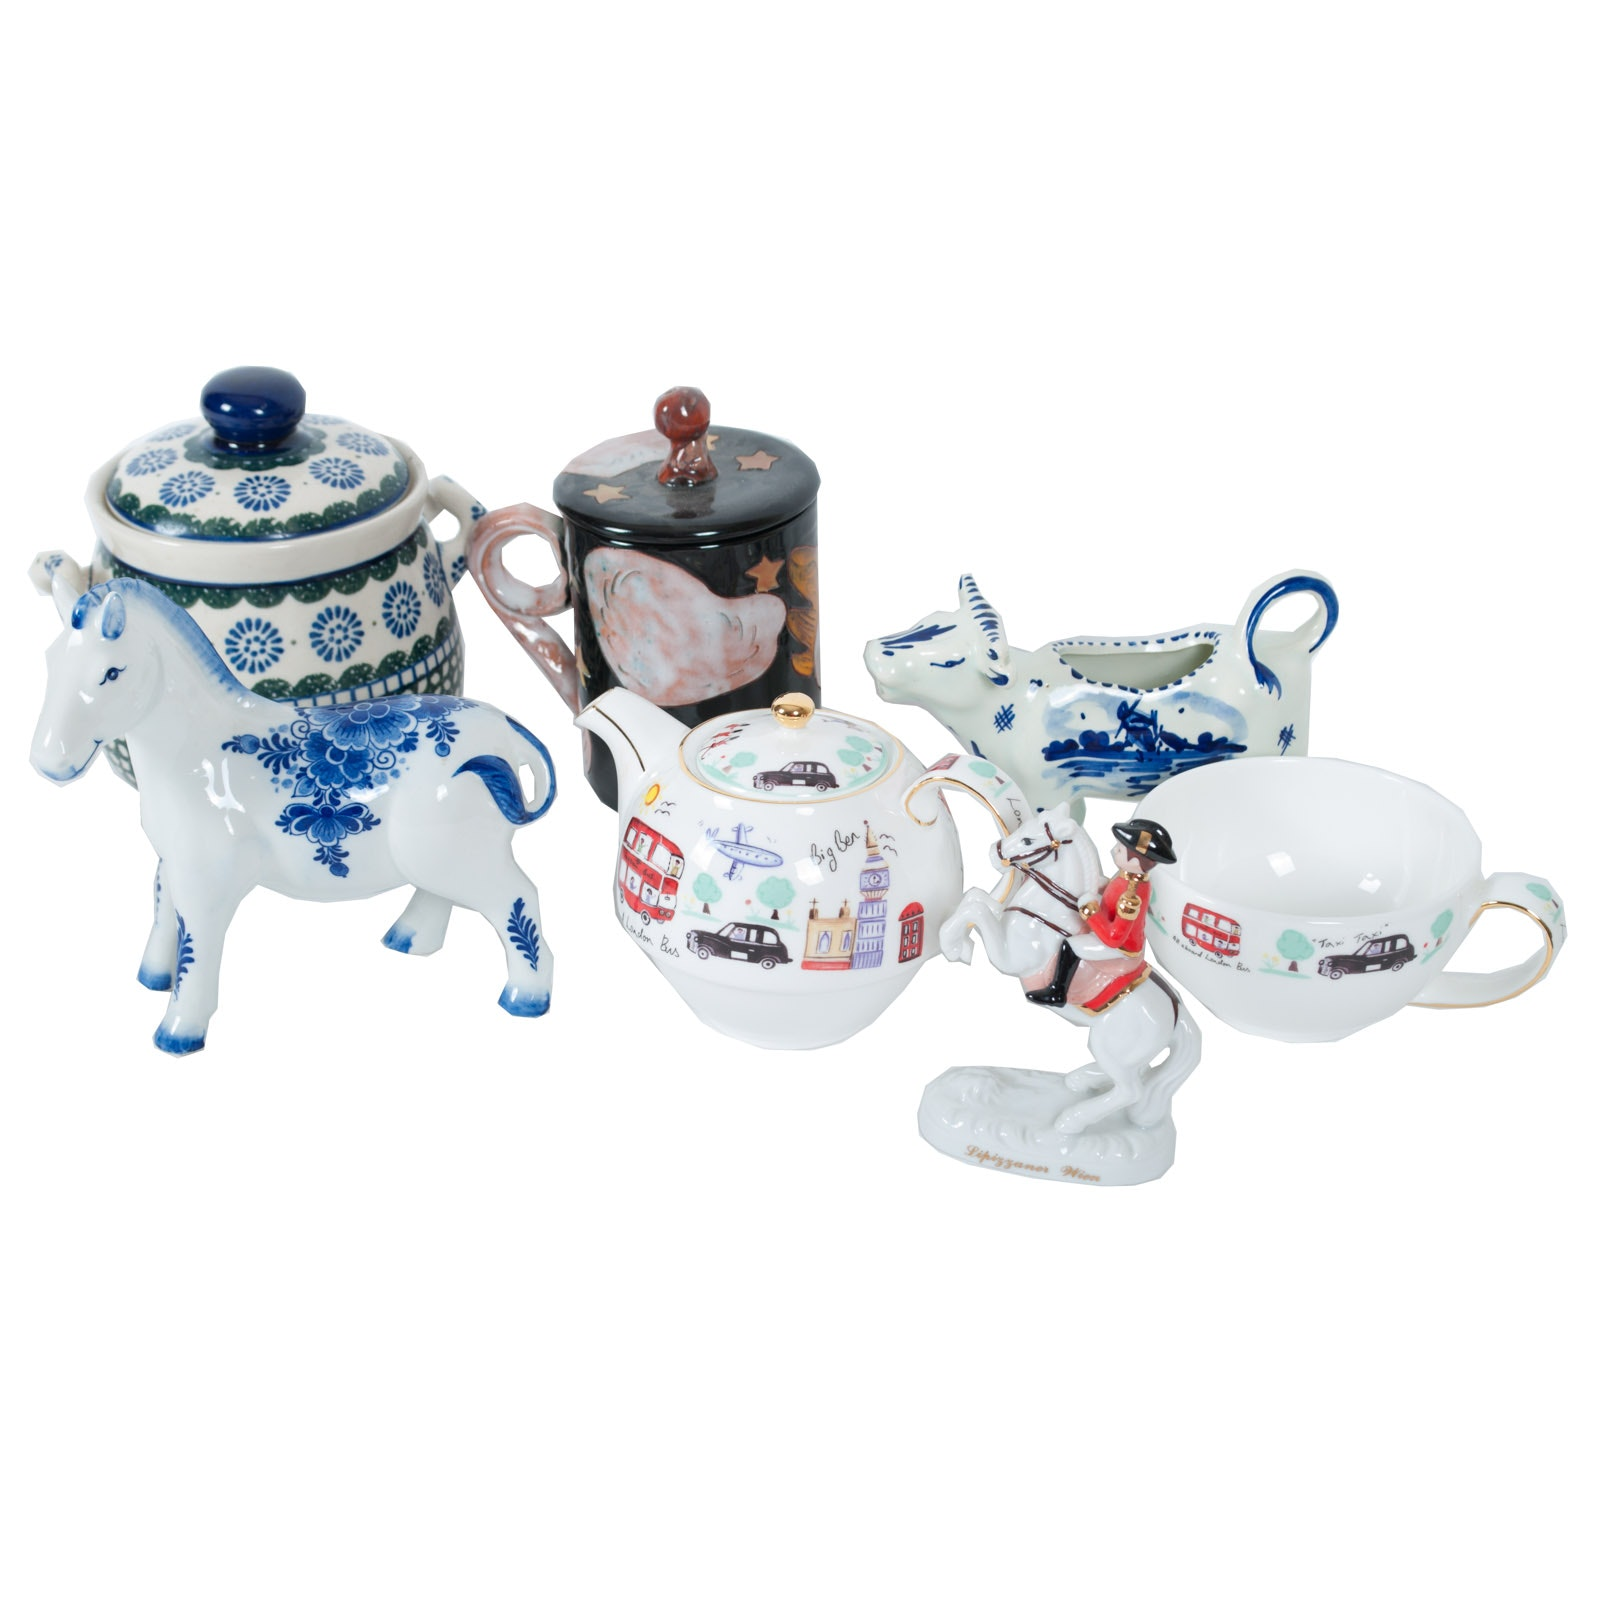 Delft Blue and Home Decor Ceramic Collectables